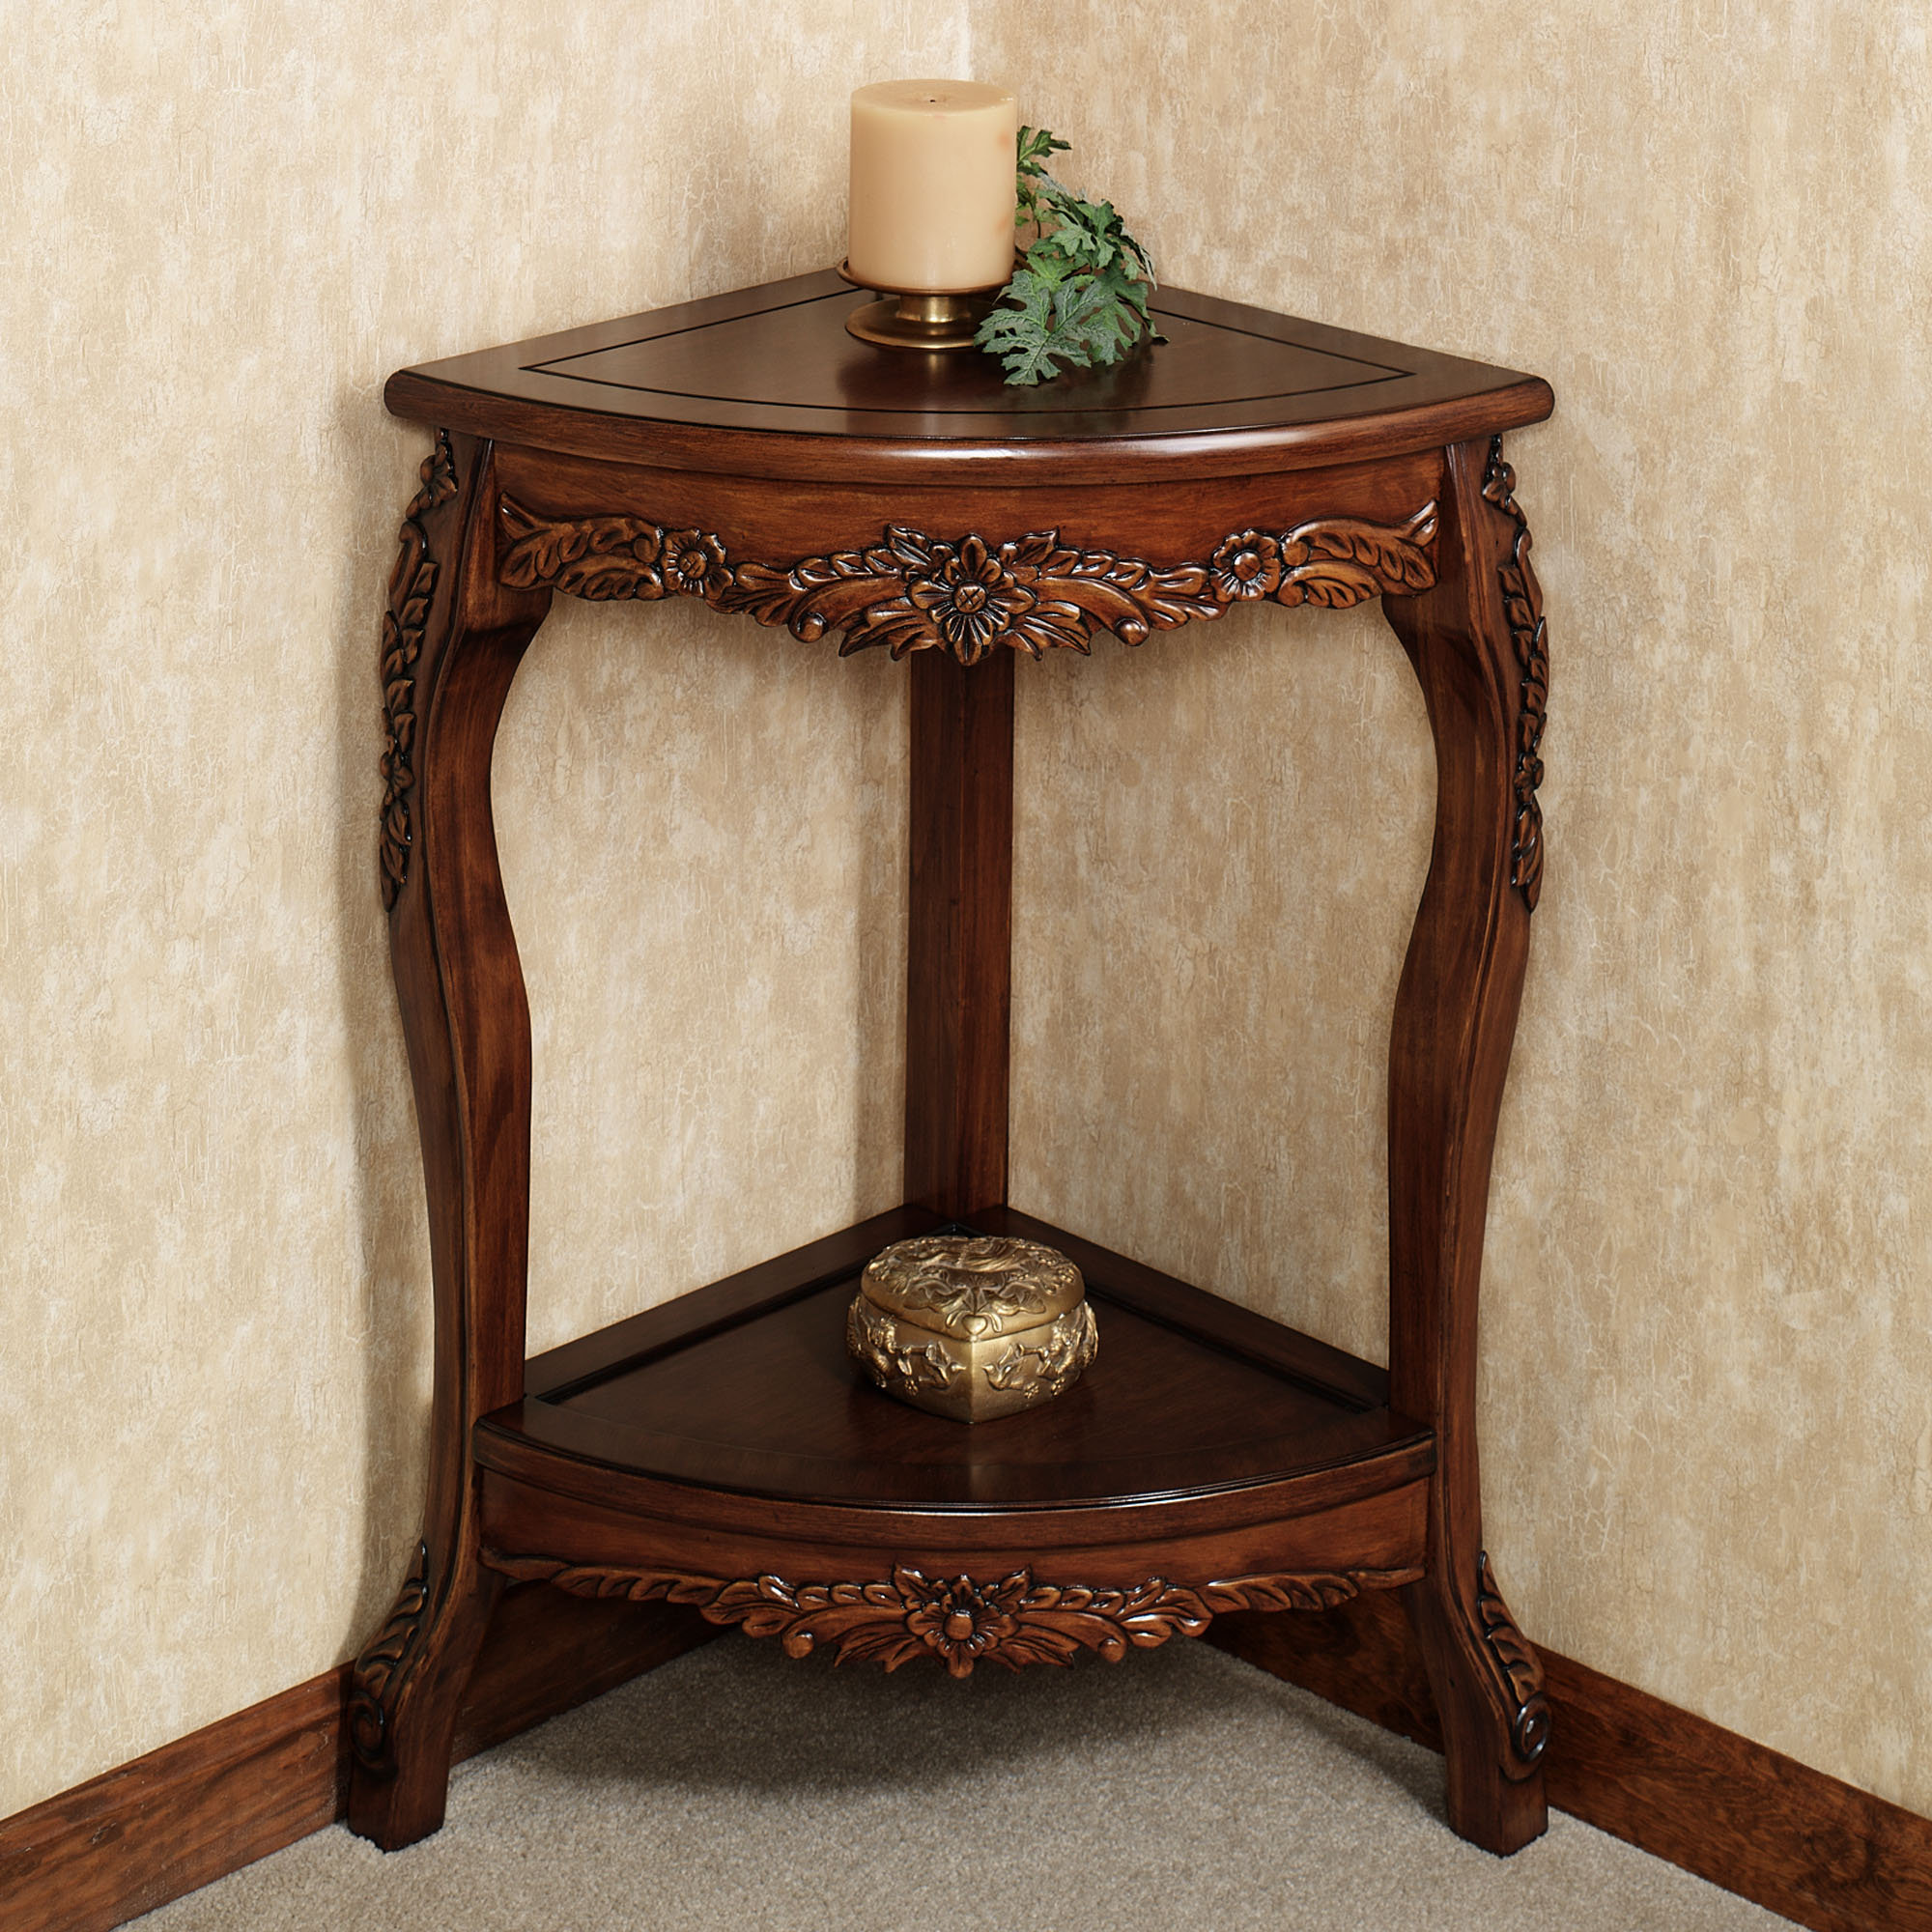 nice and clean look corner accent table the home redesign classy with storage small living room tables white oak bedside rustic farmhouse end easy diy coffee snack ikea pottery